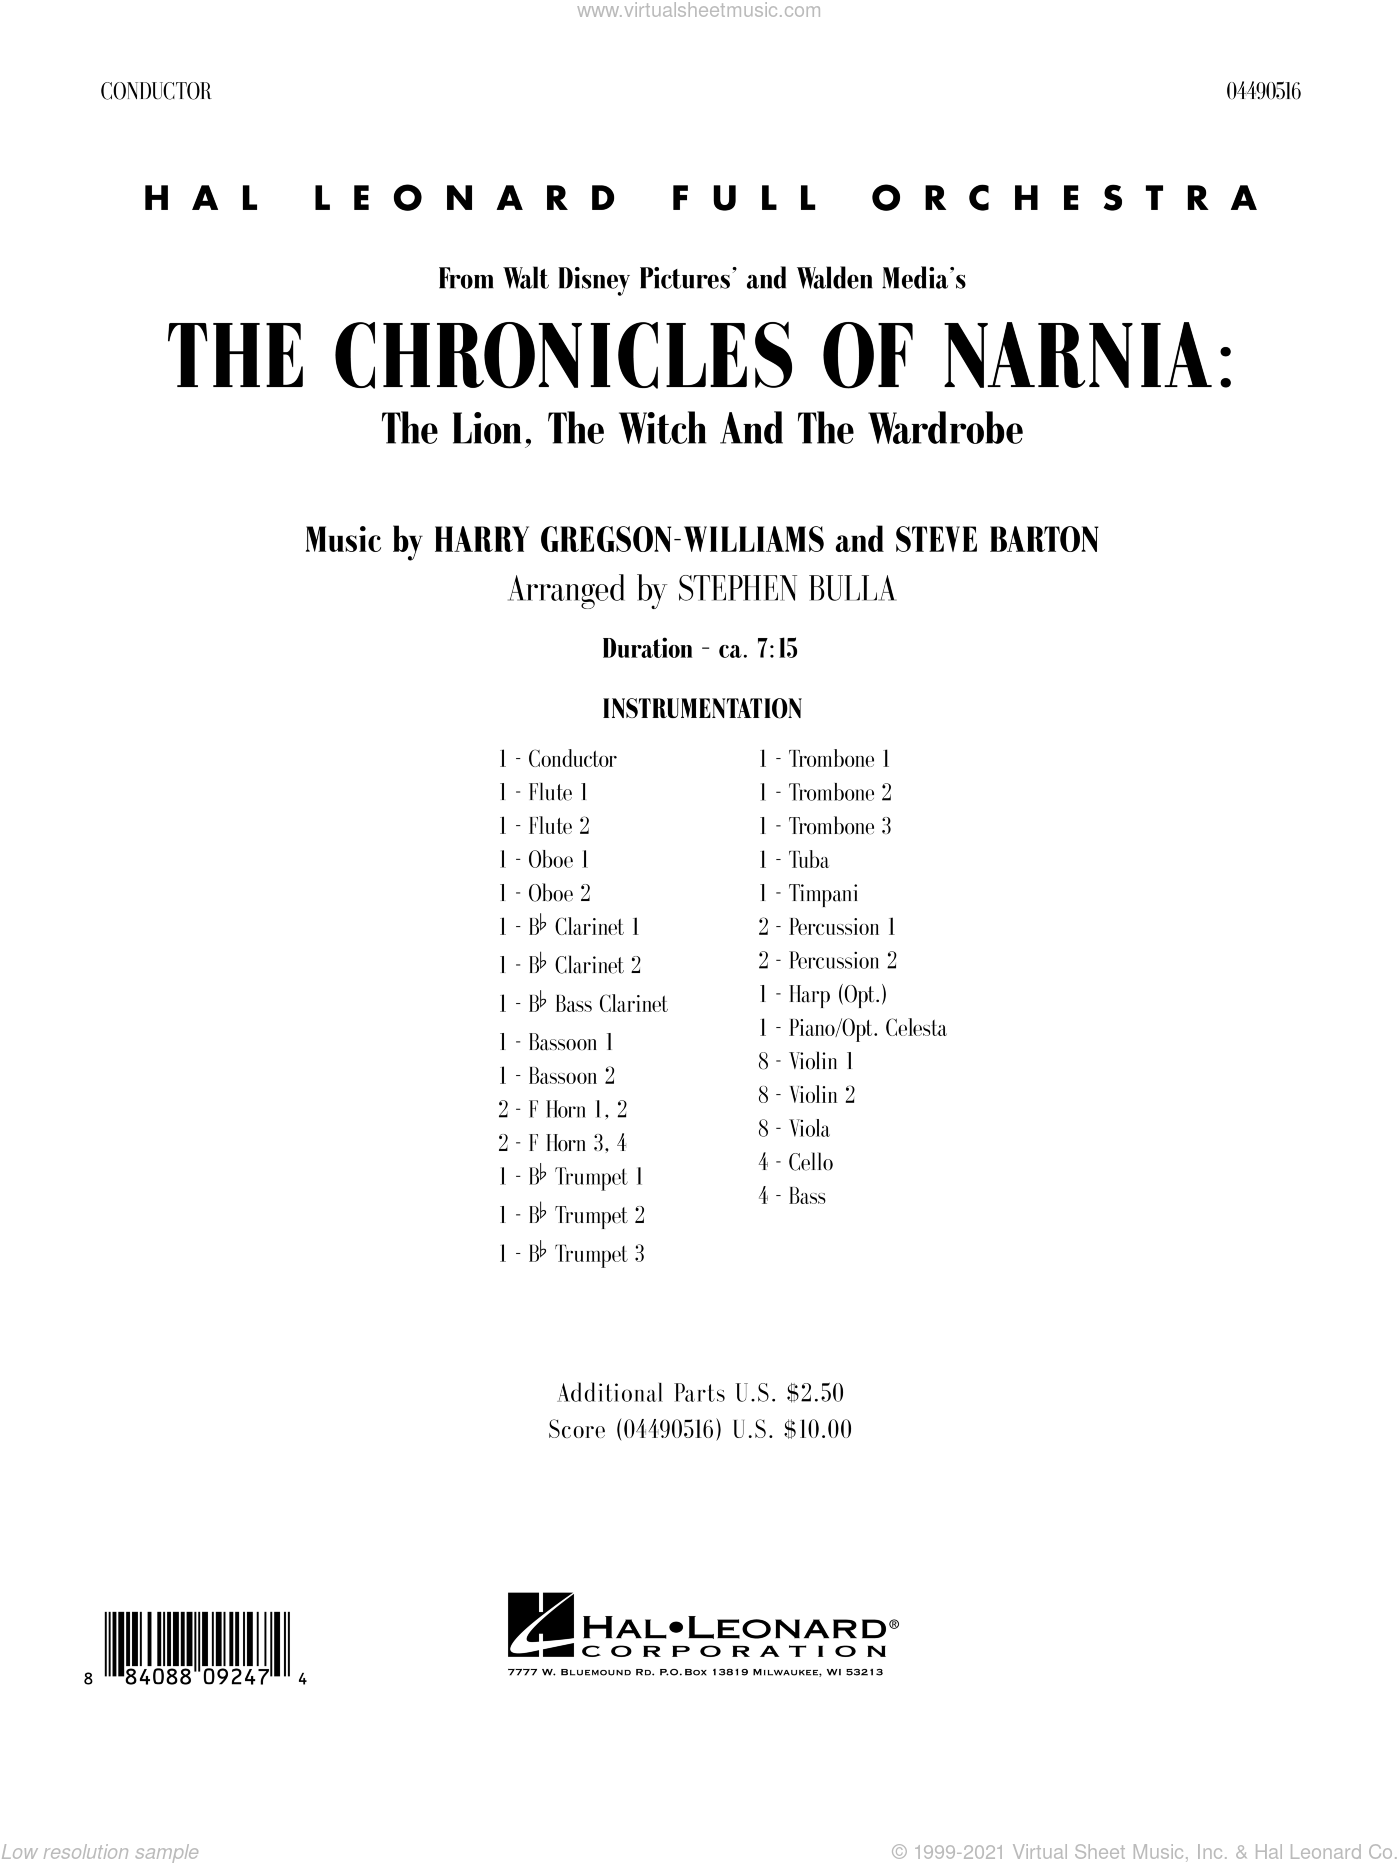 Music from The Chronicles Of Narnia: The Lion, The Witch And The Wardrobe sheet music for full orchestra (full score) by Harry Gregson-Williams